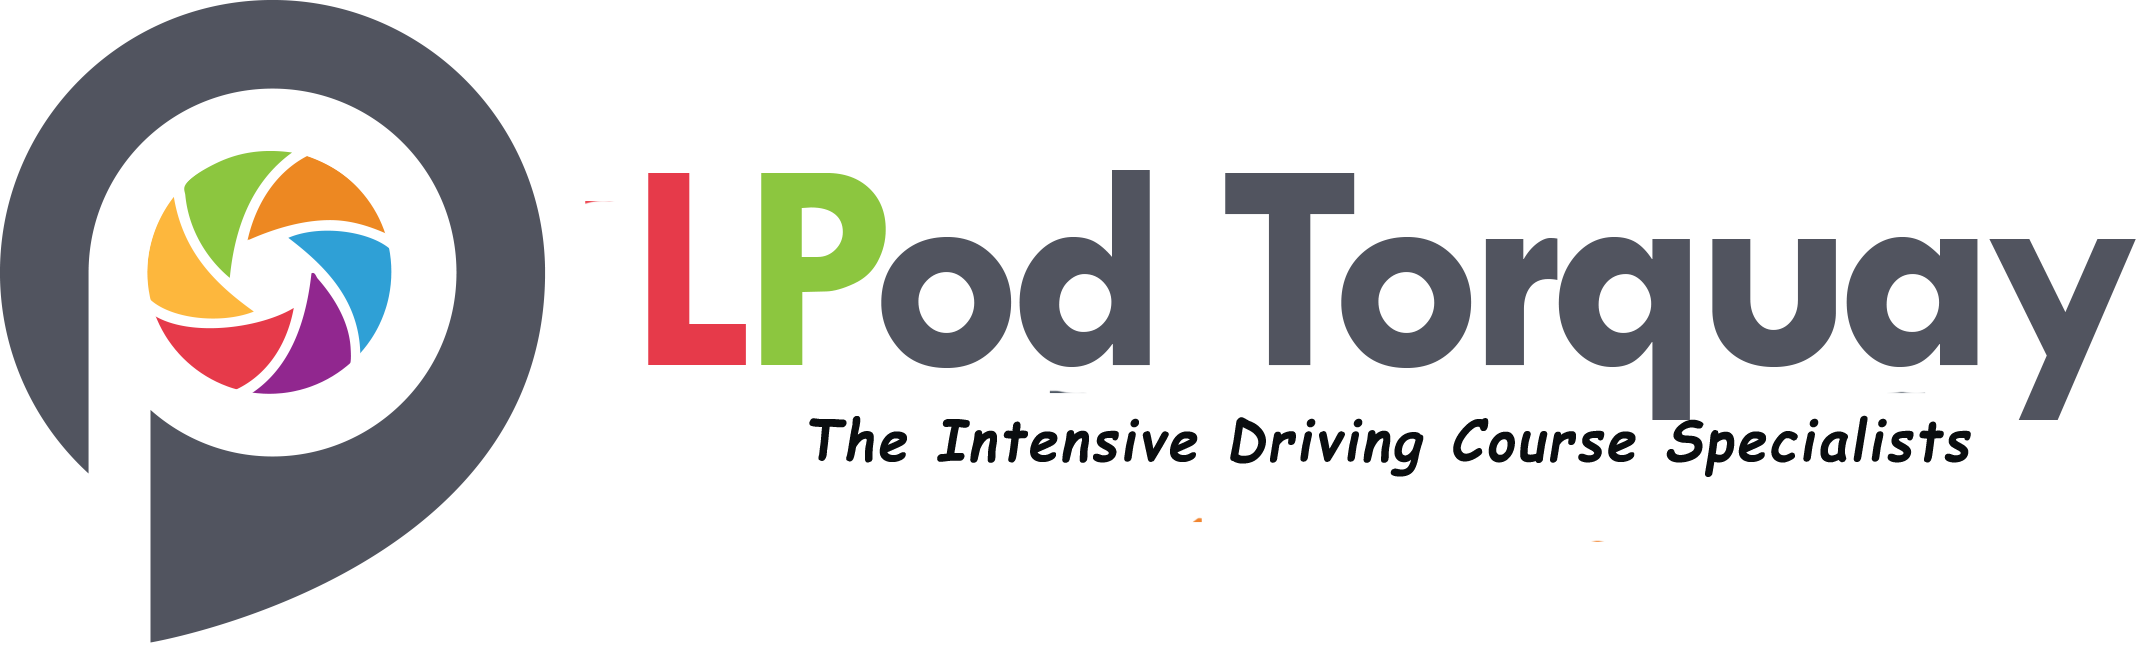 intensive driving courses torquay, intensive driving lessons torquay, intensive driving school torquay